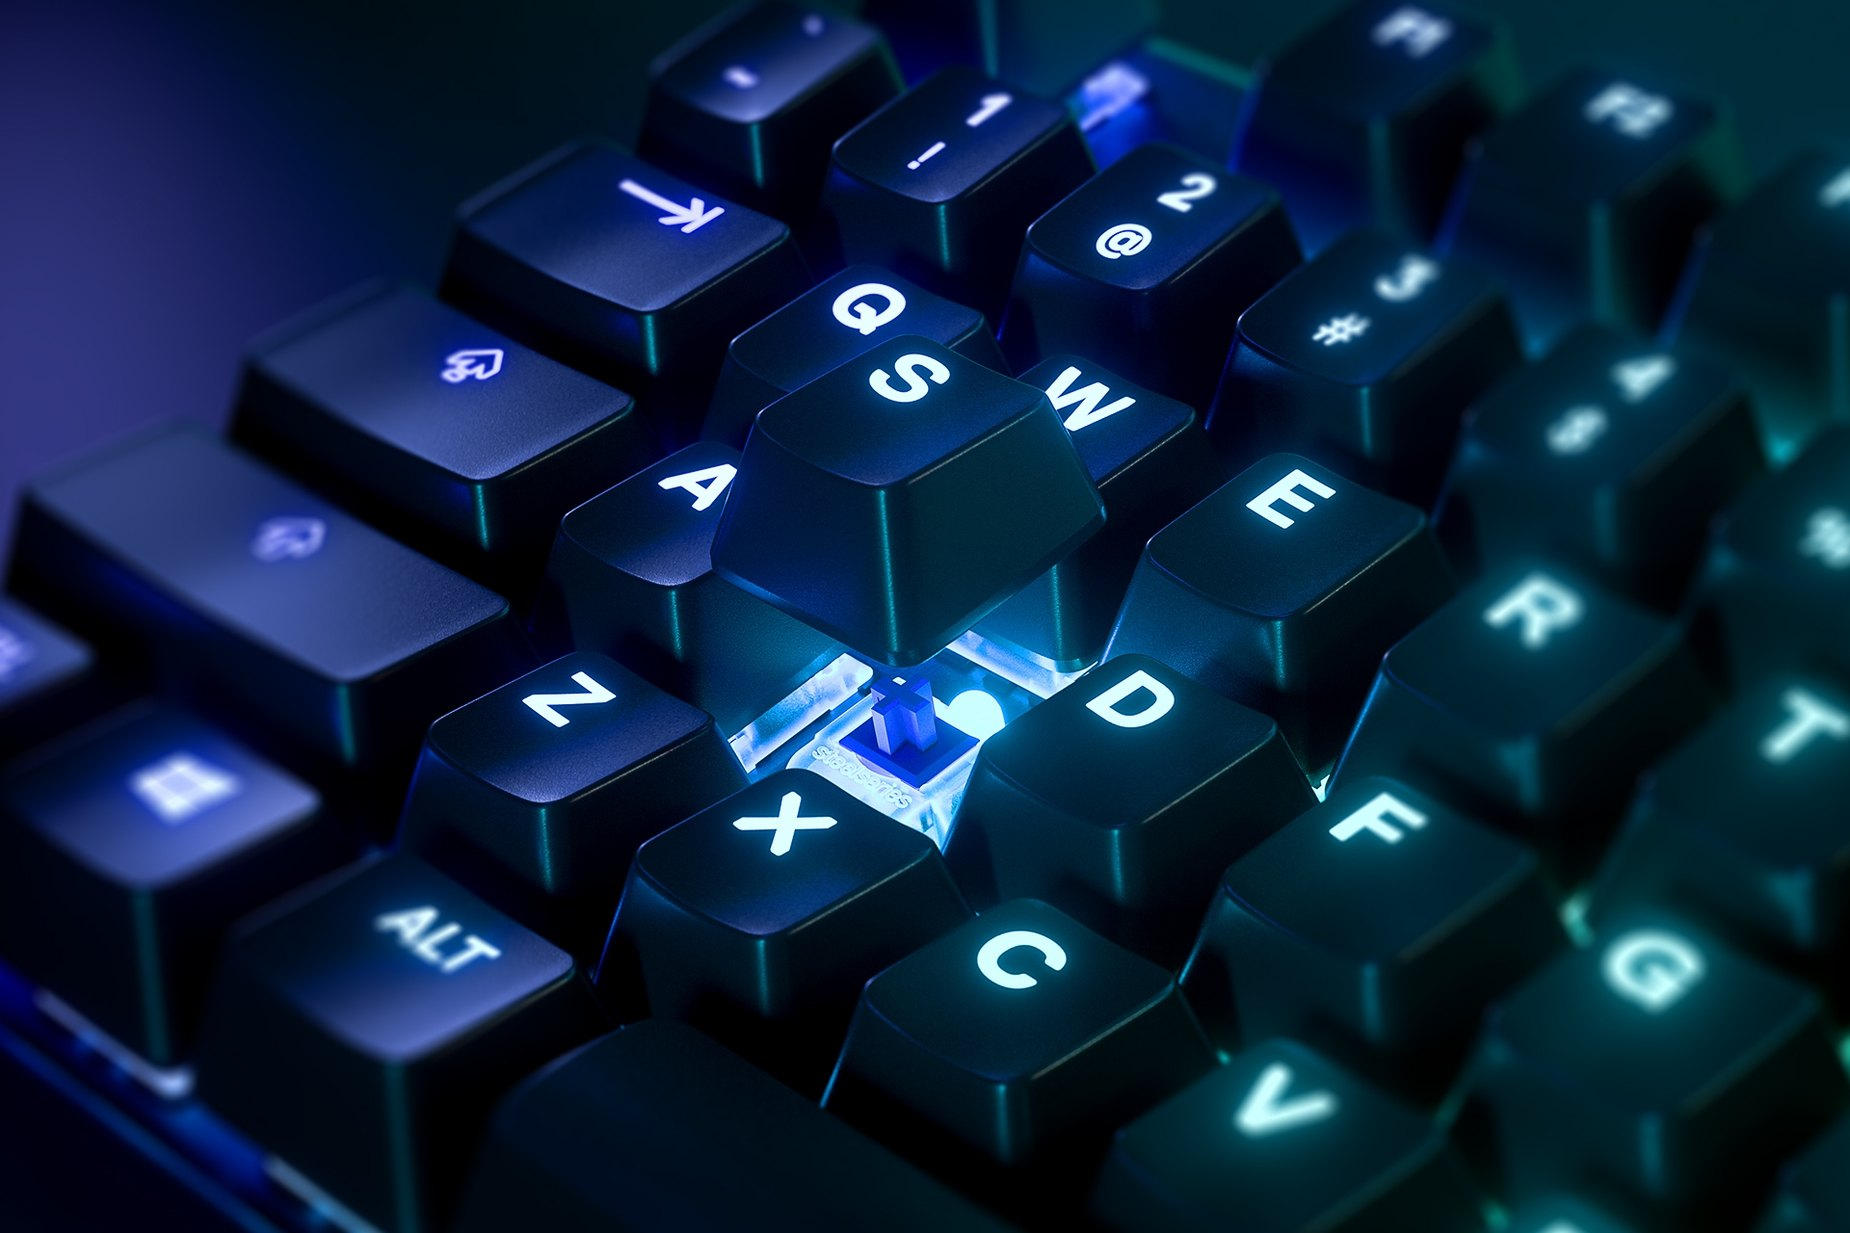 Zoomed in view of a single key on the Korean - Apex 7 TKL (Blue Switch) gaming keyboard, the key is raised up to show the SteelSeries QX2 Mechanical RGB Switch underneath